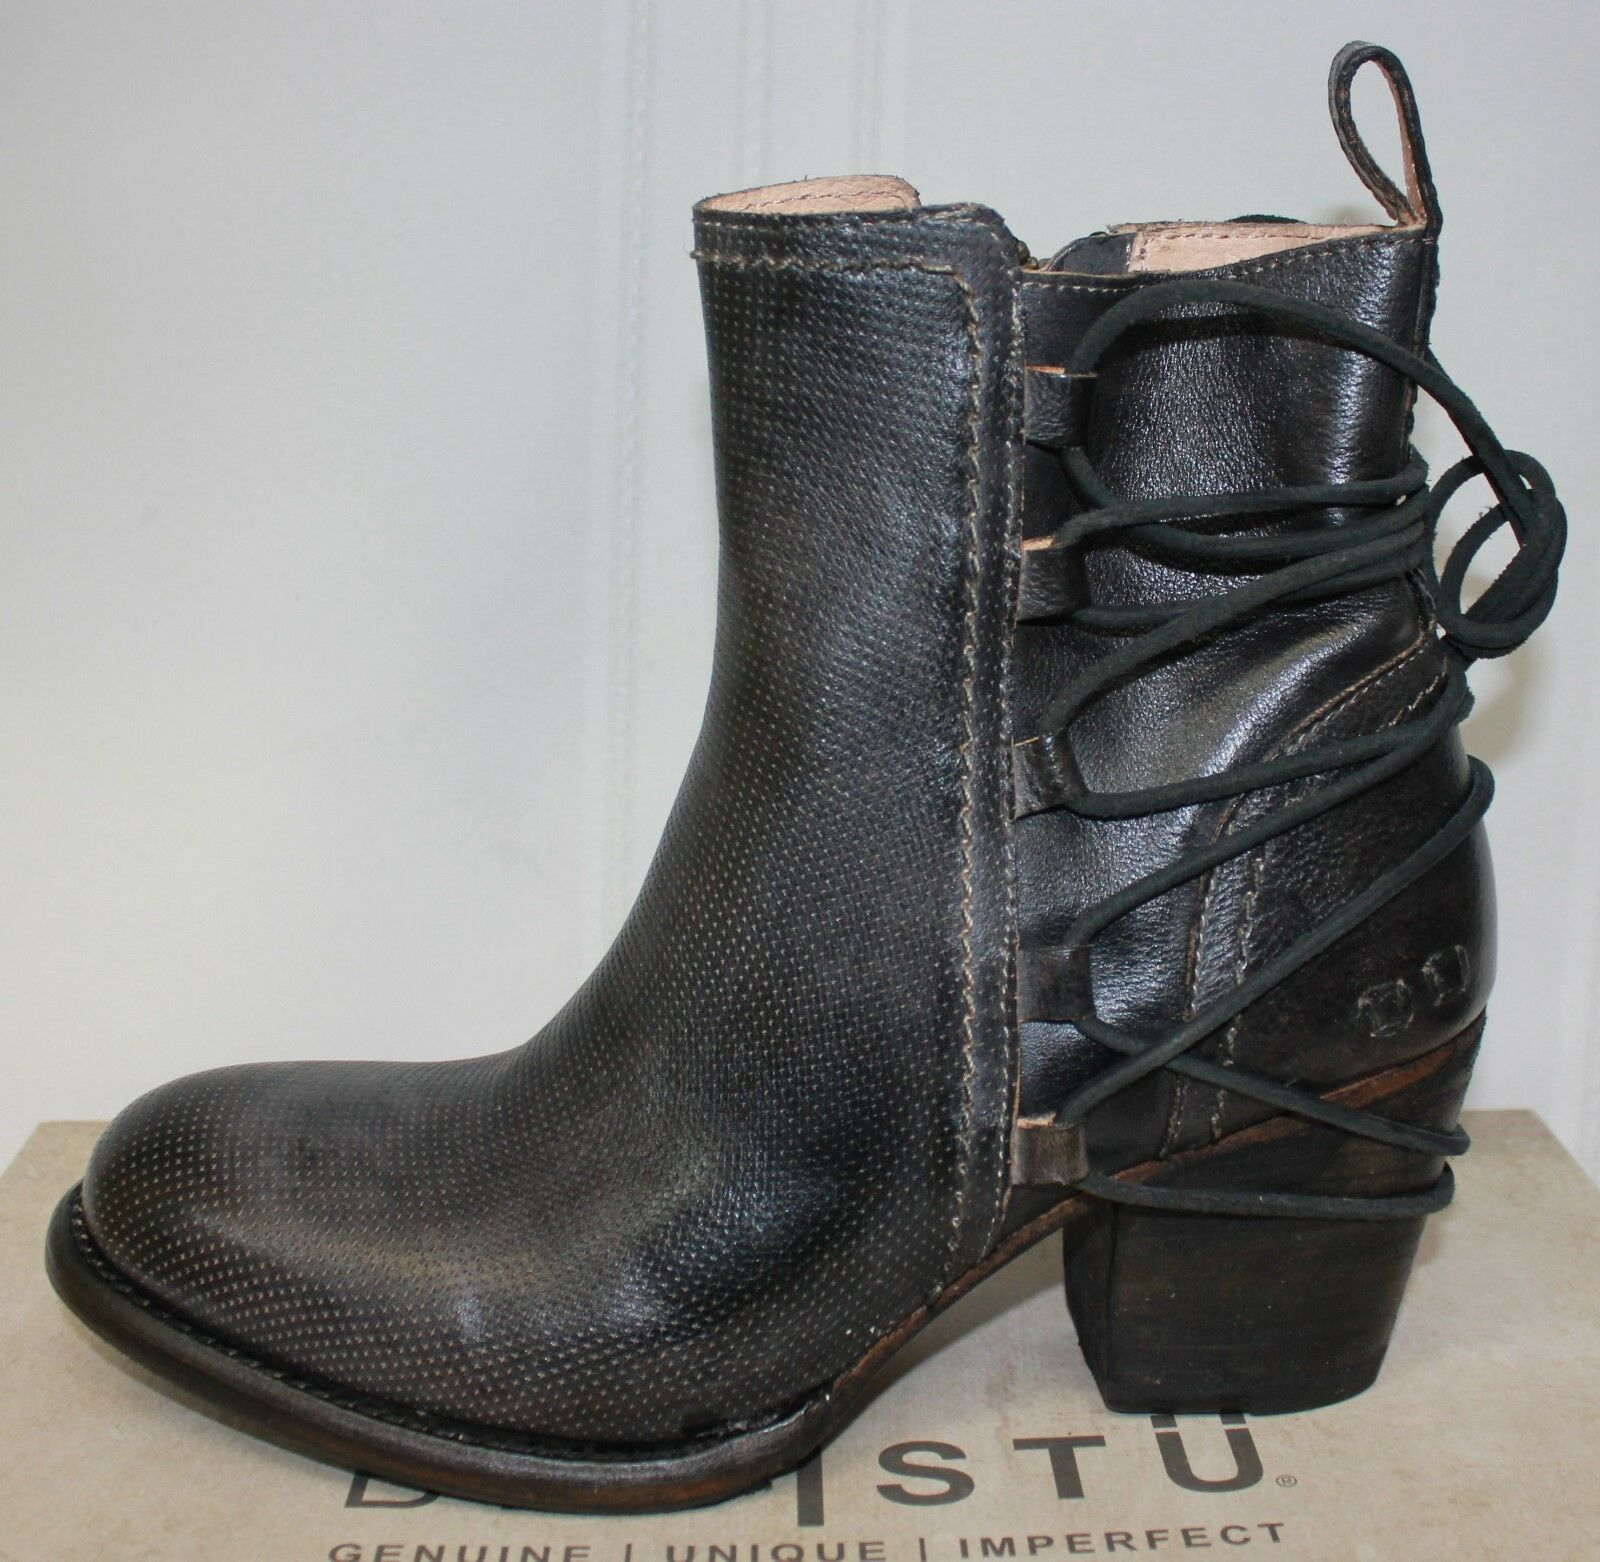 Bed Stu Blaire Blaire Blaire Leather boots Graphite Rustic Dark Grey New With Box beebc7